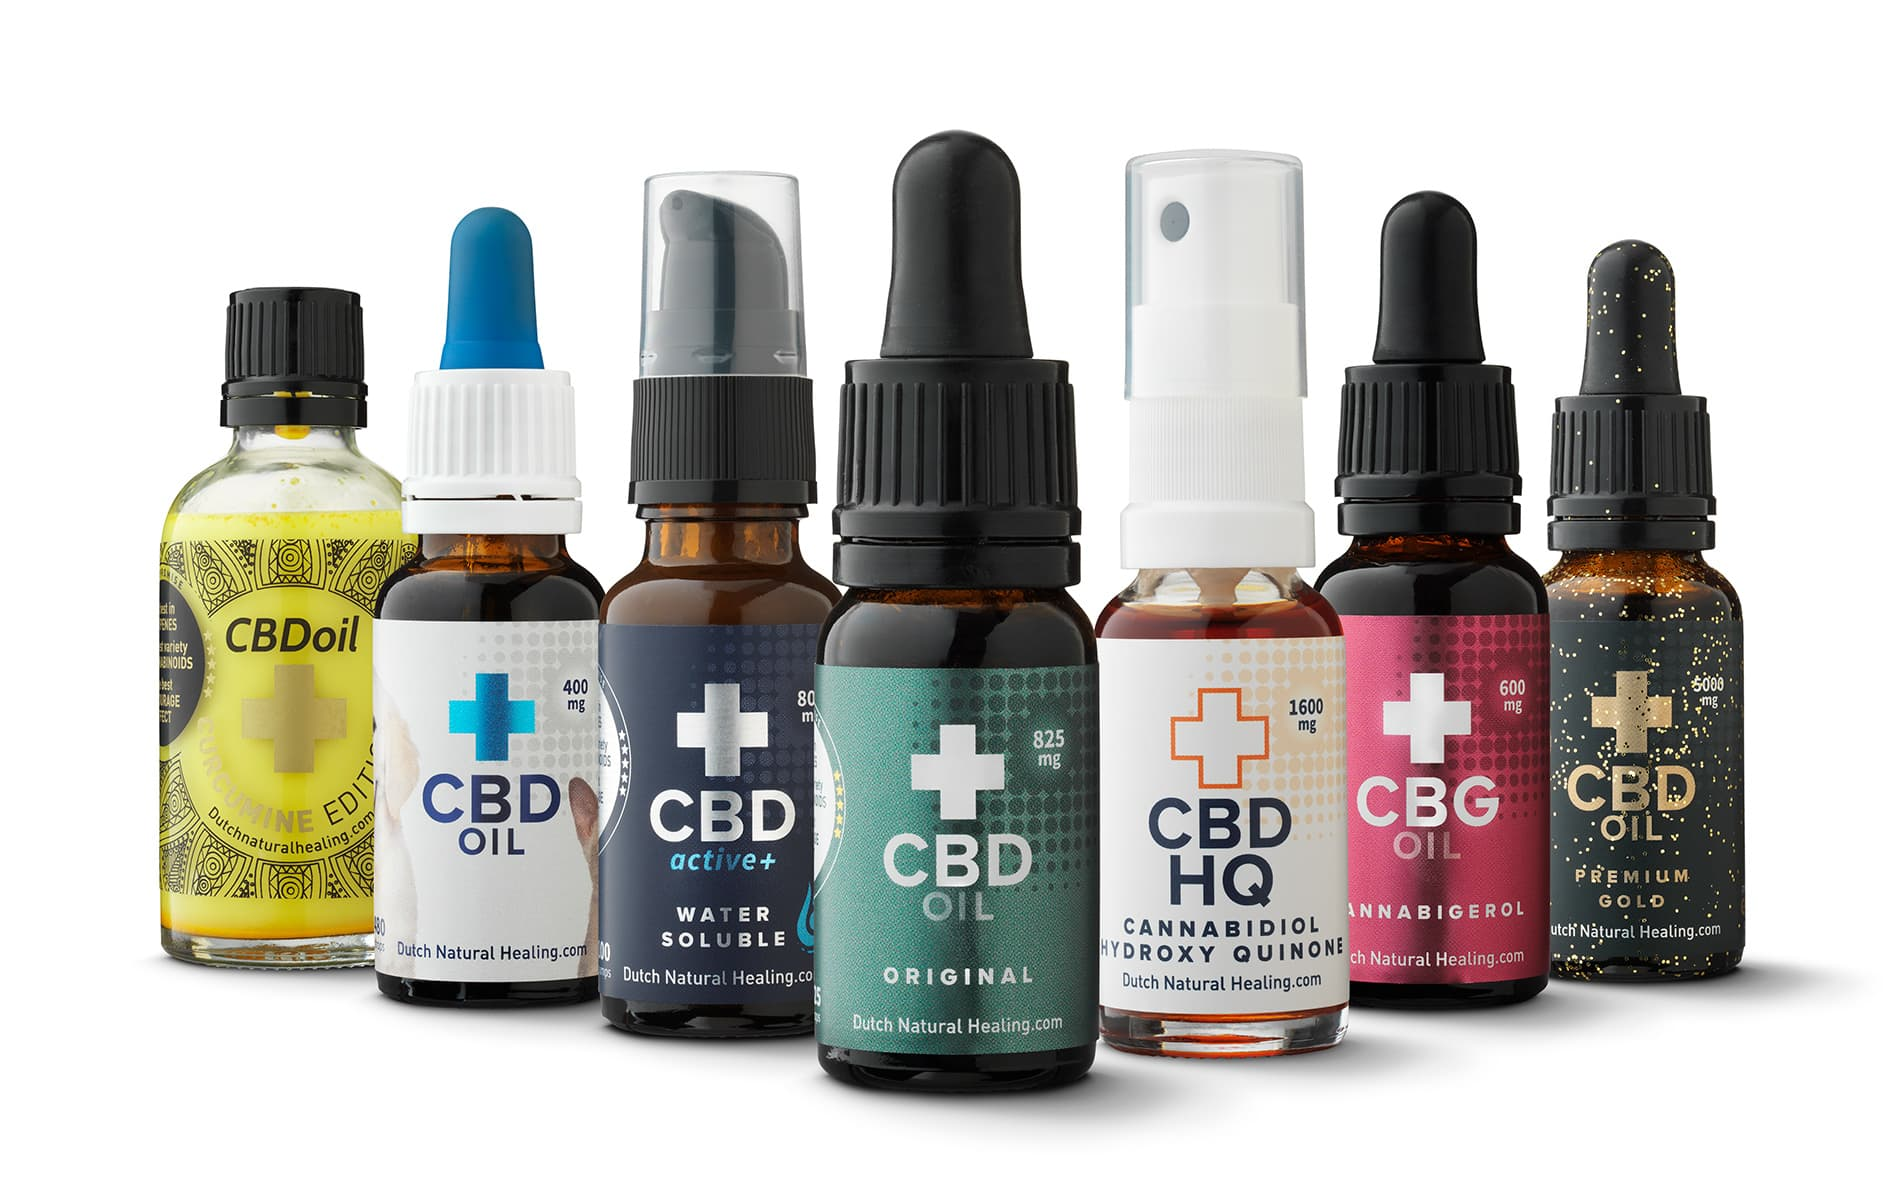 Dutch Natural Healing CBD oil product family